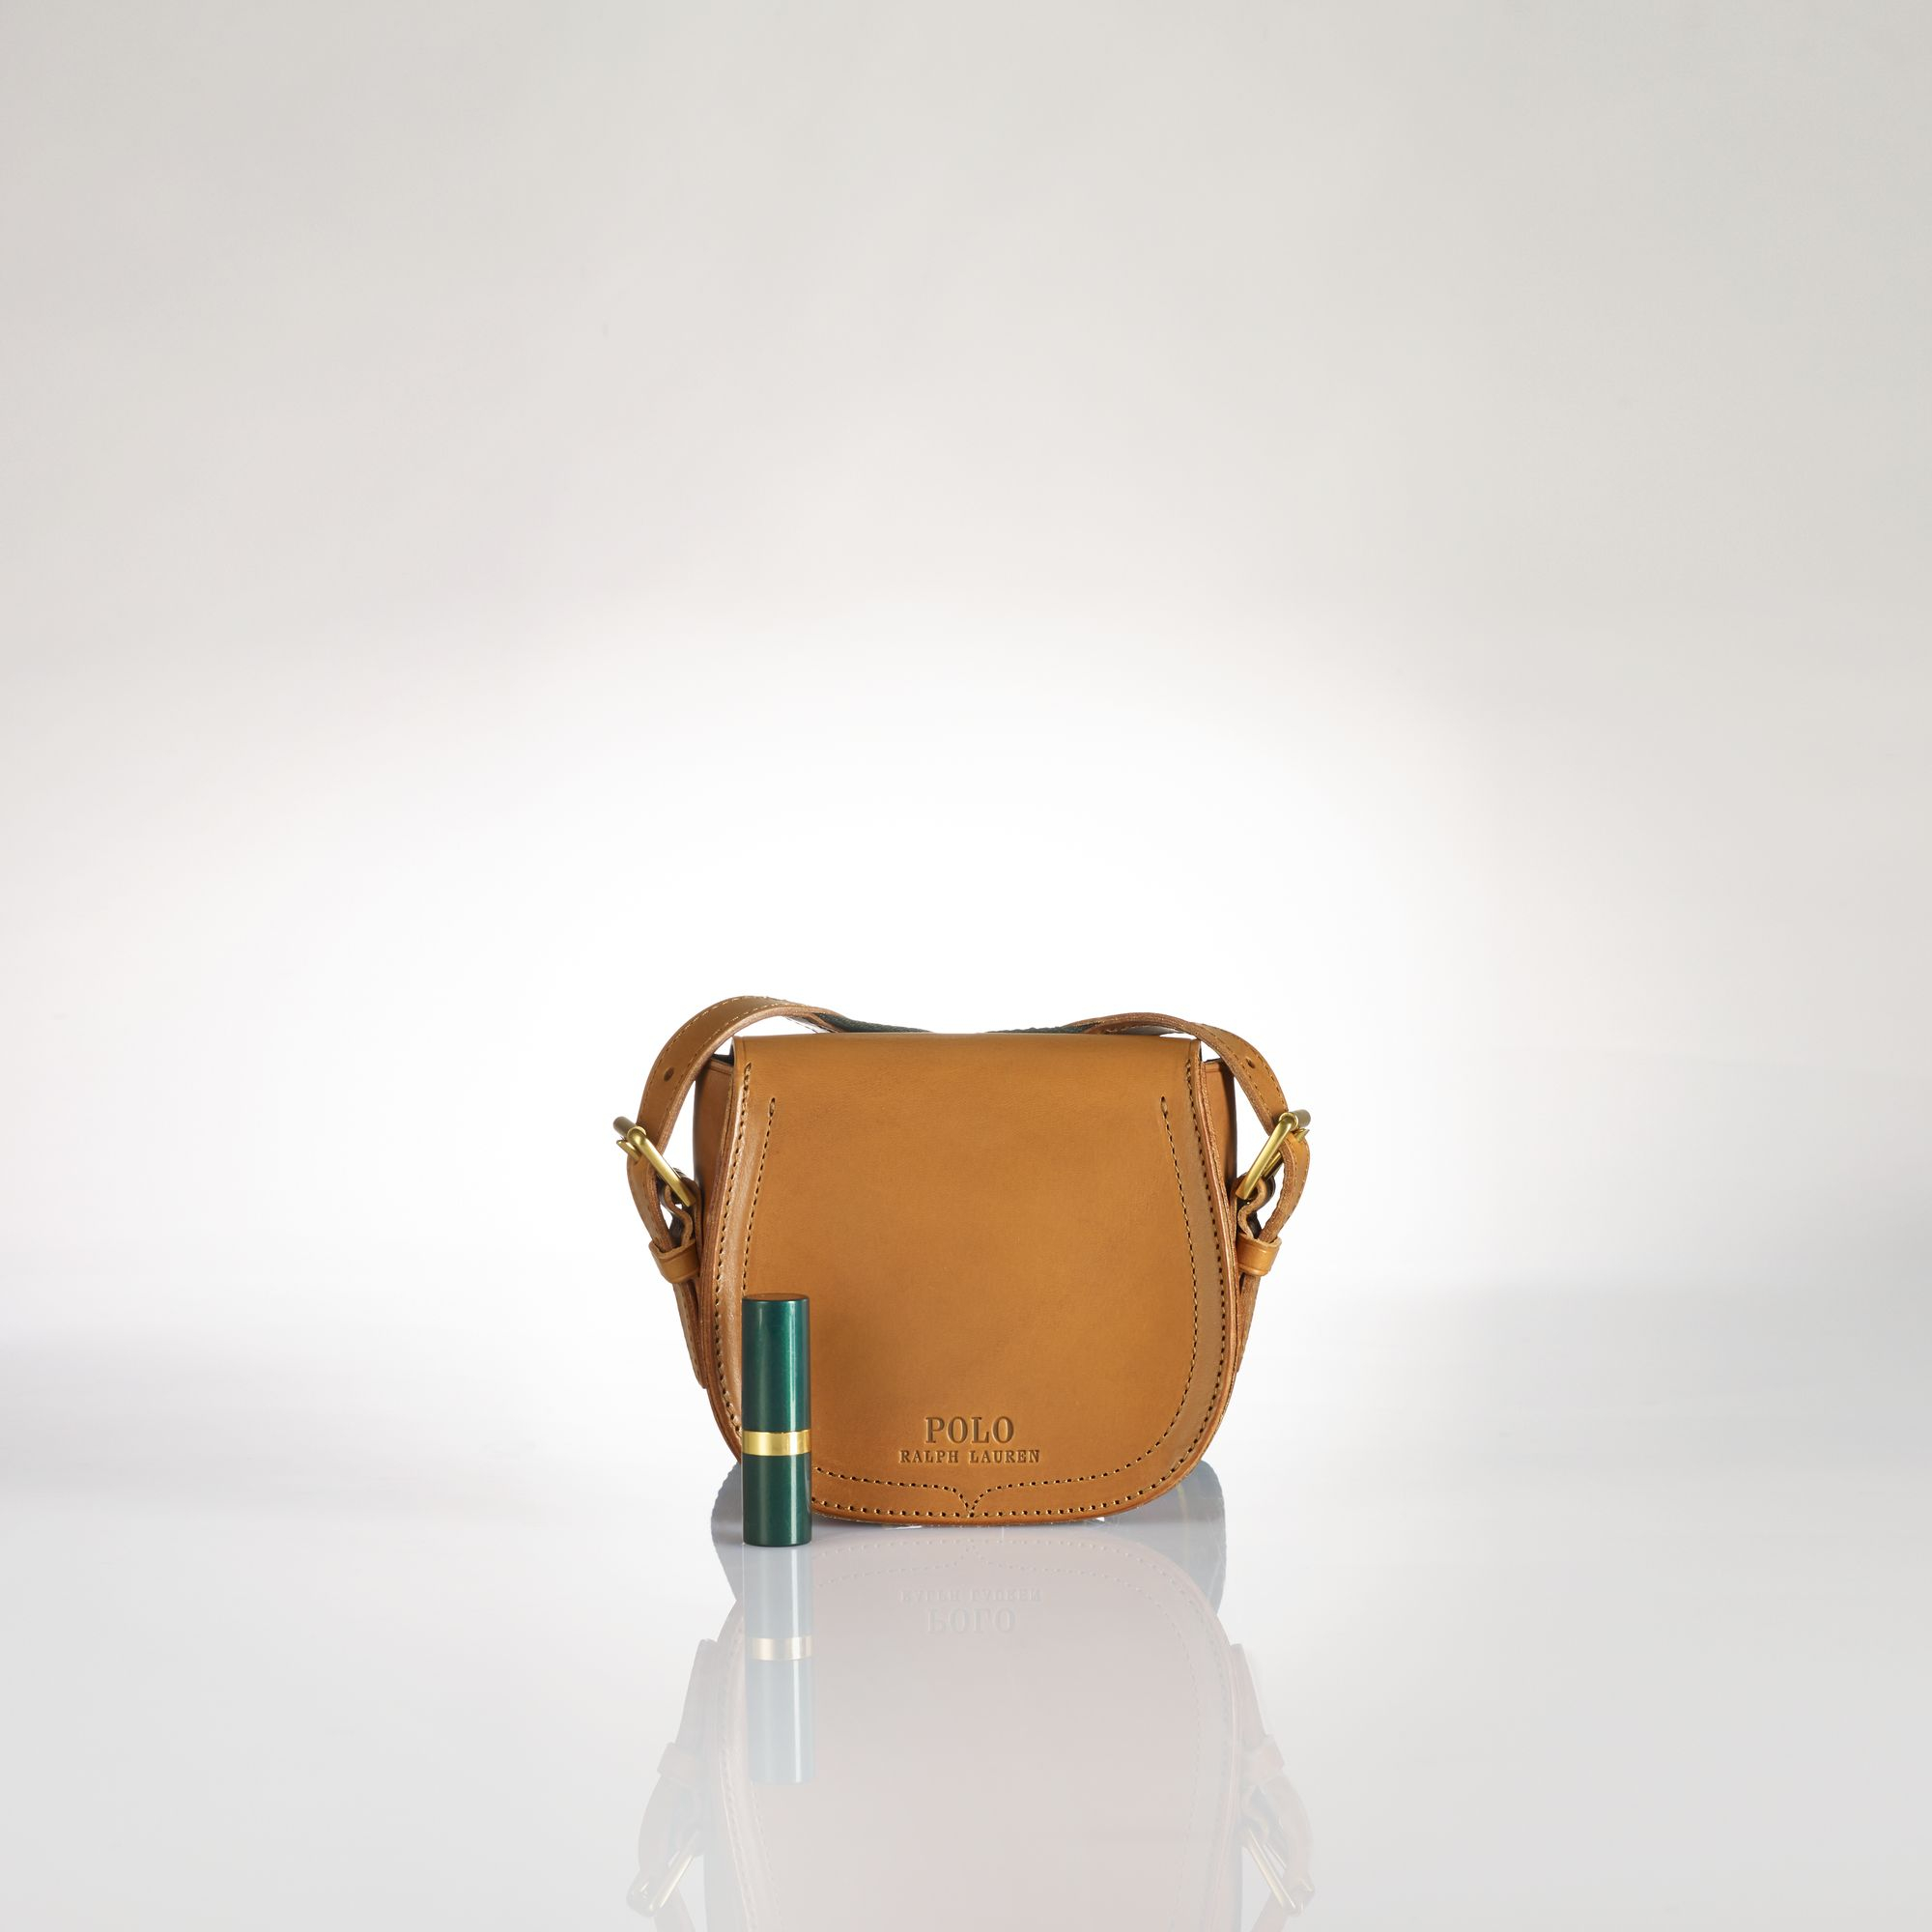 a3f86dac04cb Polo Ralph Lauren Mini Leather Saddle Bag in Brown - Lyst